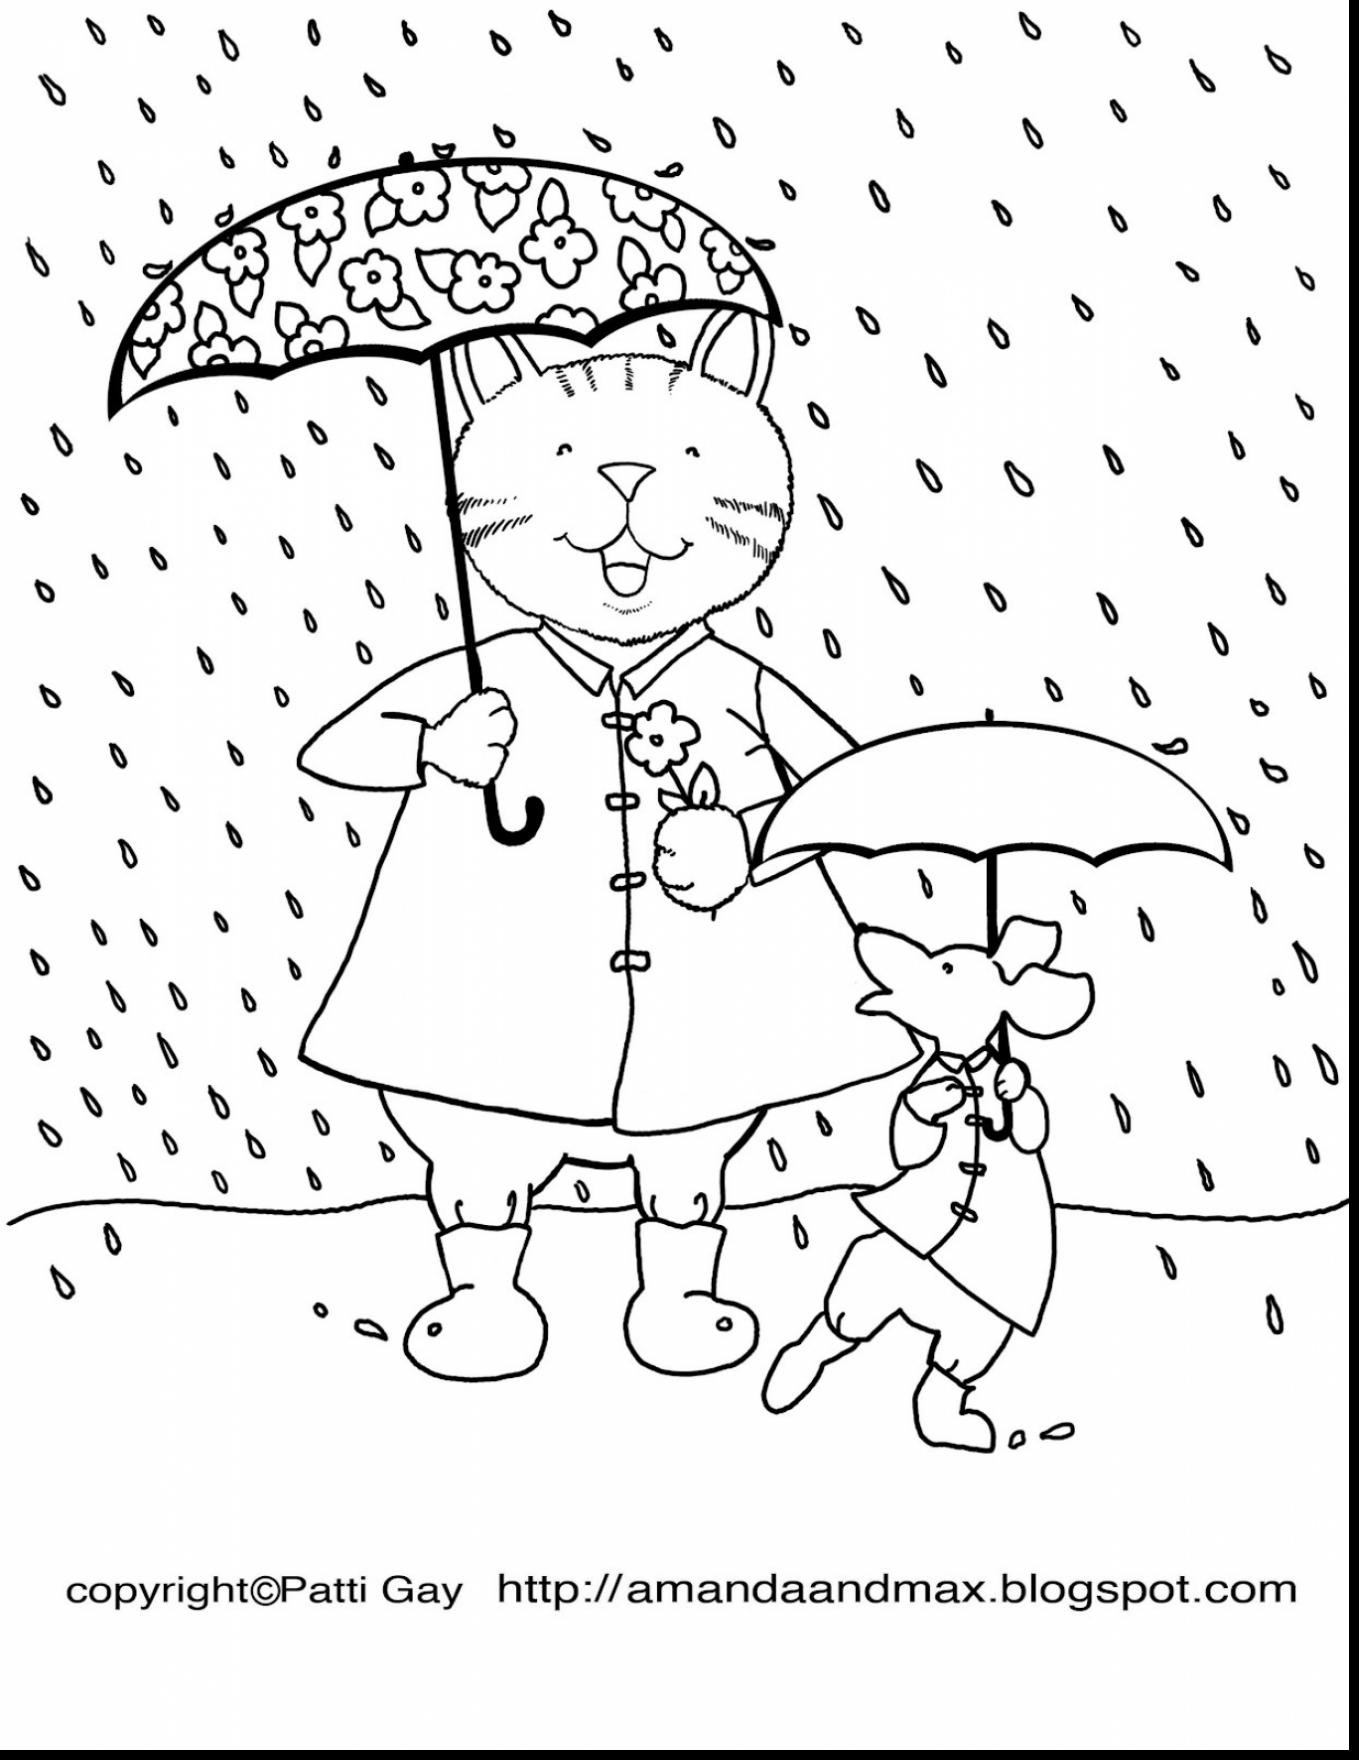 Cloudy Day Coloring Pages At Getdrawings